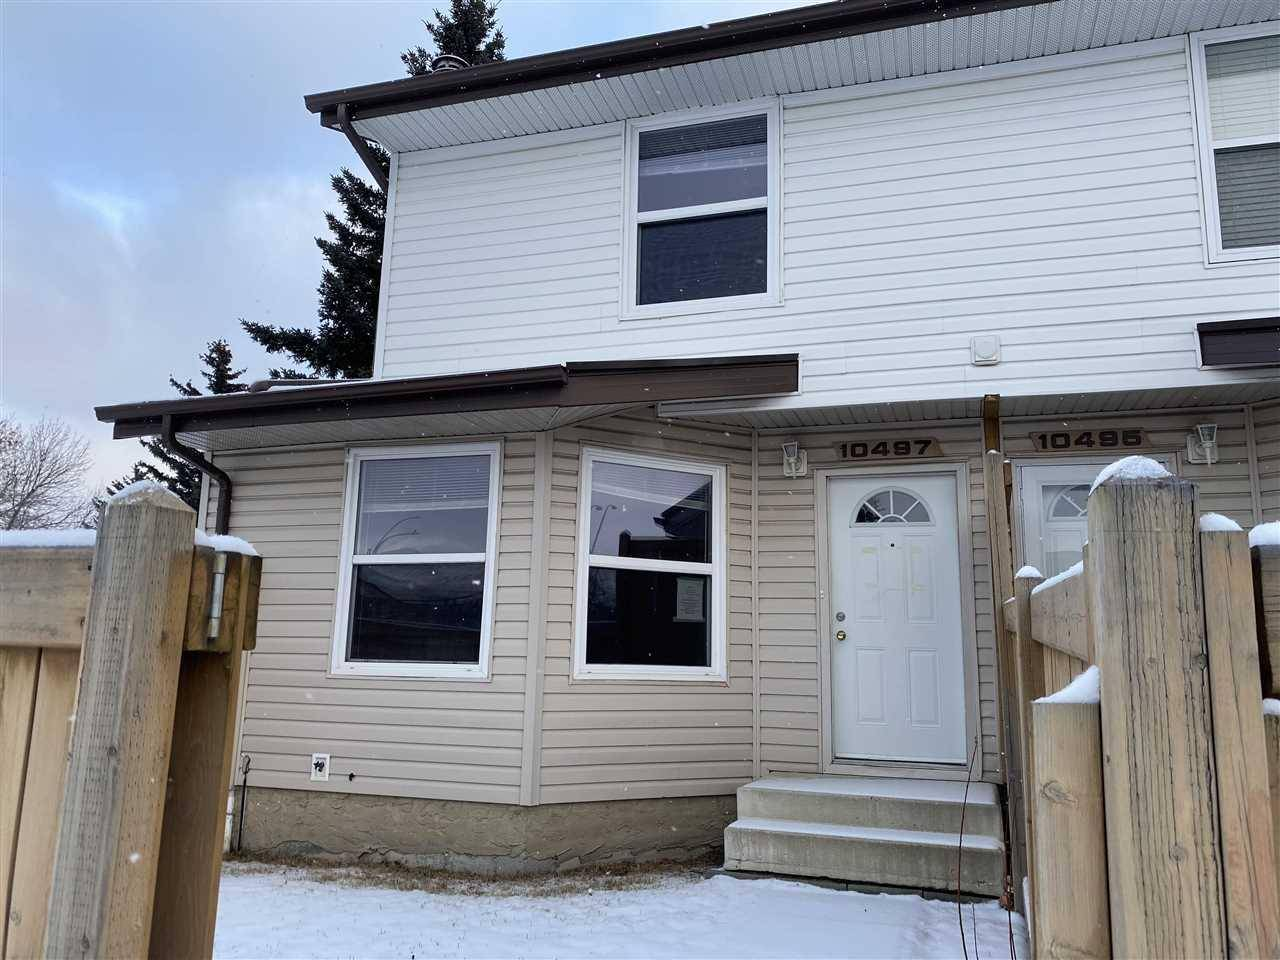 Townhouse for sale at 10497 24 Ave Nw Edmonton Alberta - MLS: E4180892